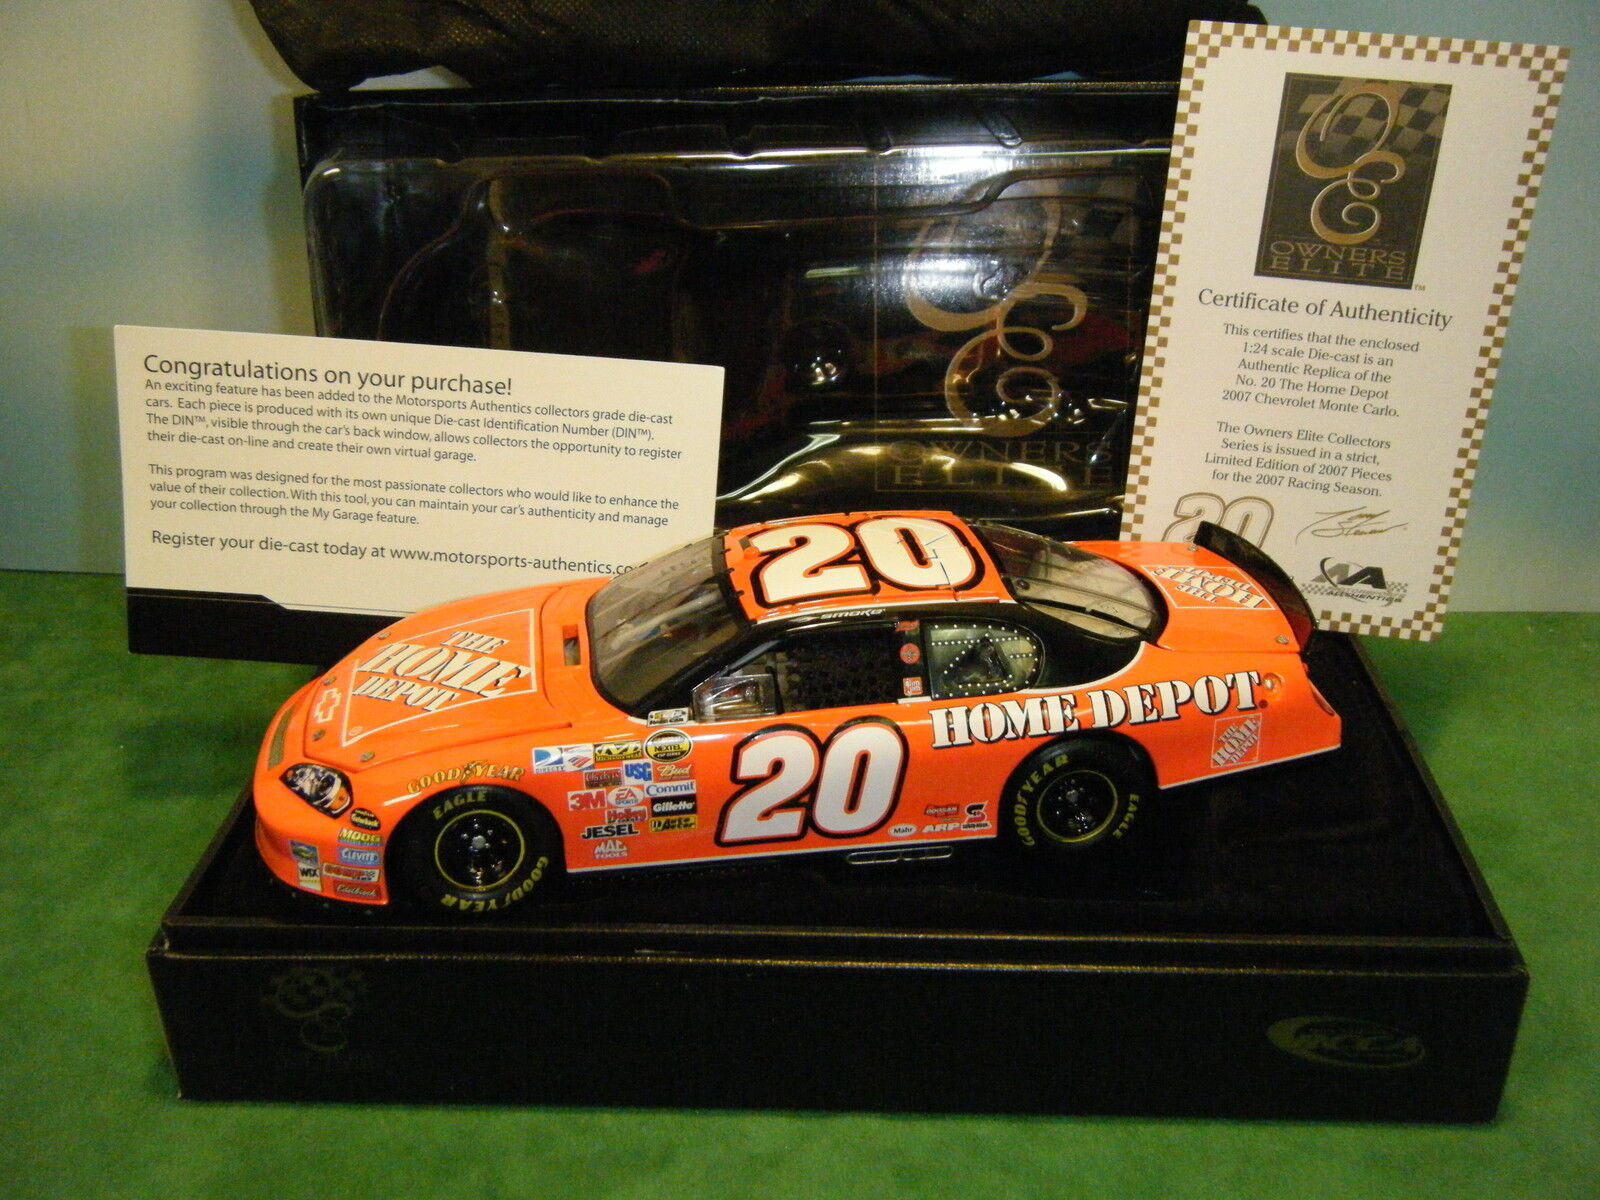 OWNERS ELITE TONY STEWART  20 HOME DEPOT '07 MONTE CARLO SS LE  31 of 2,007